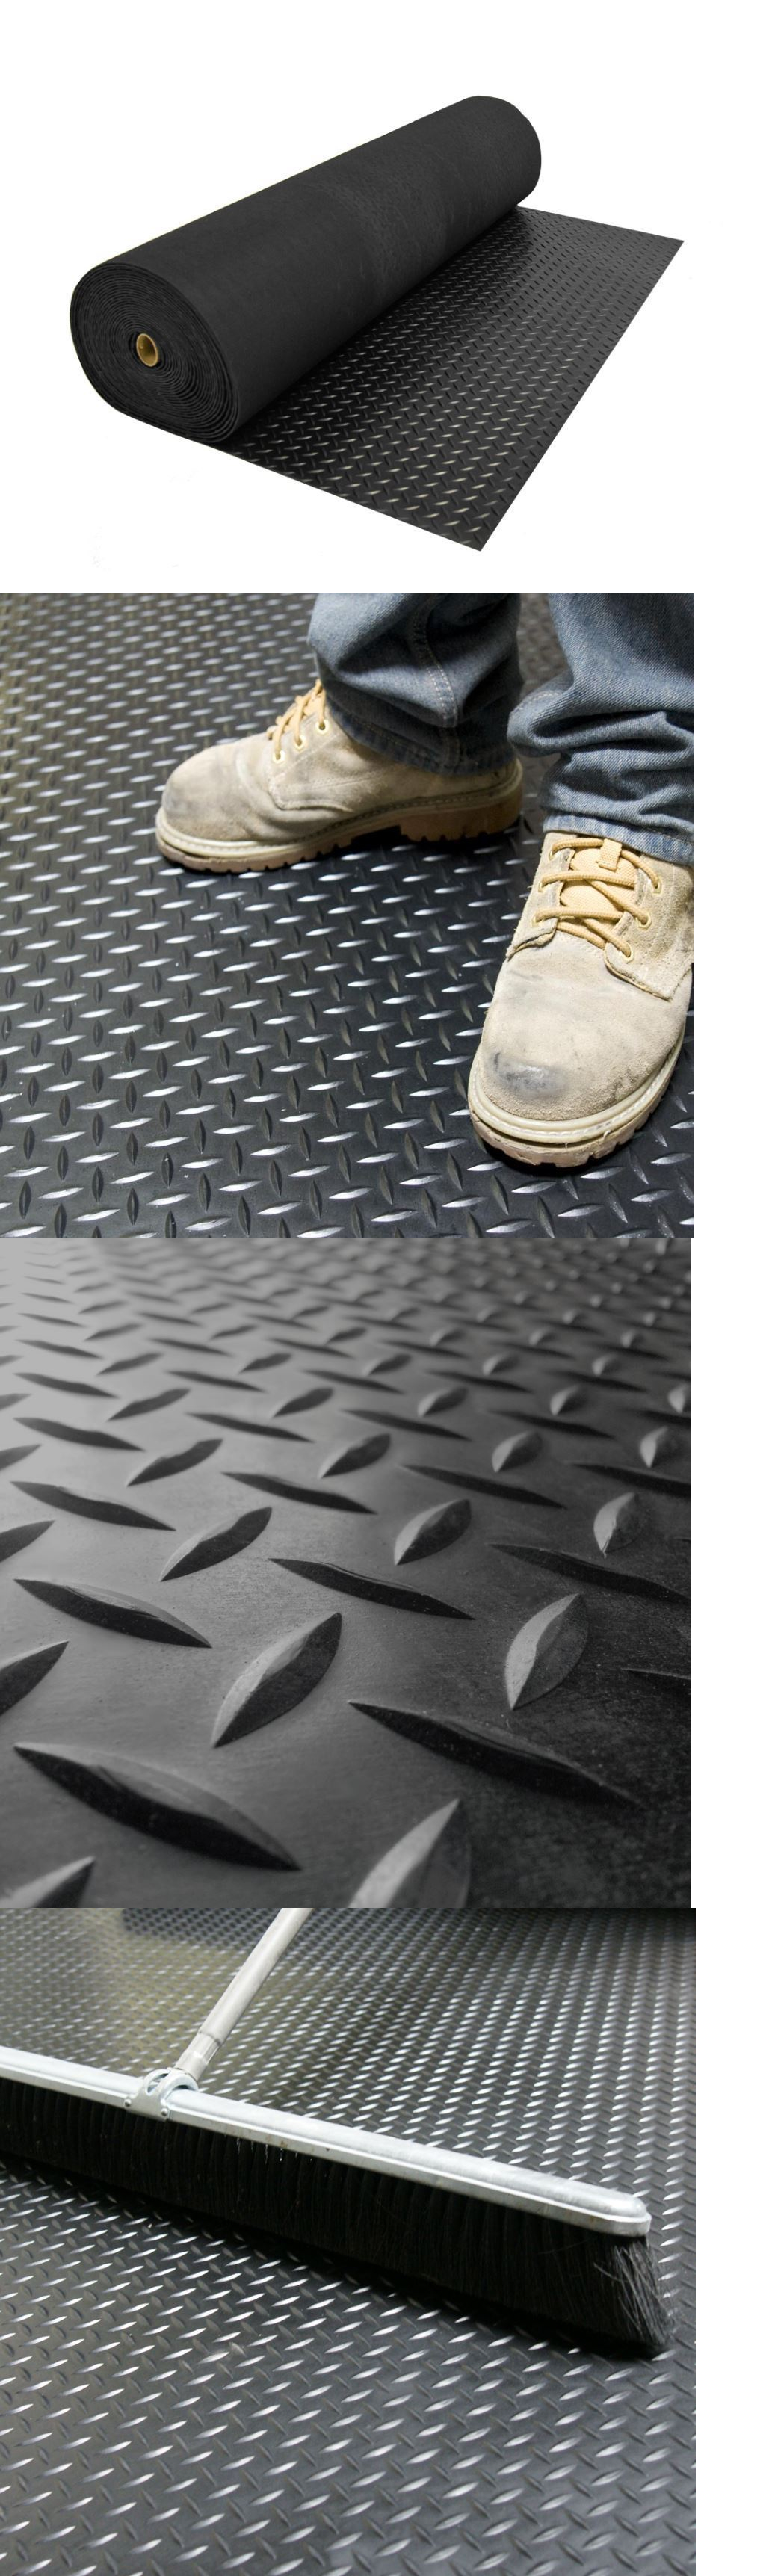 Rubber floor mats workout - Equipment Mats And Flooring 179806 Rubber Flooring Garage For Home Gym Floor Protector Black Diamond